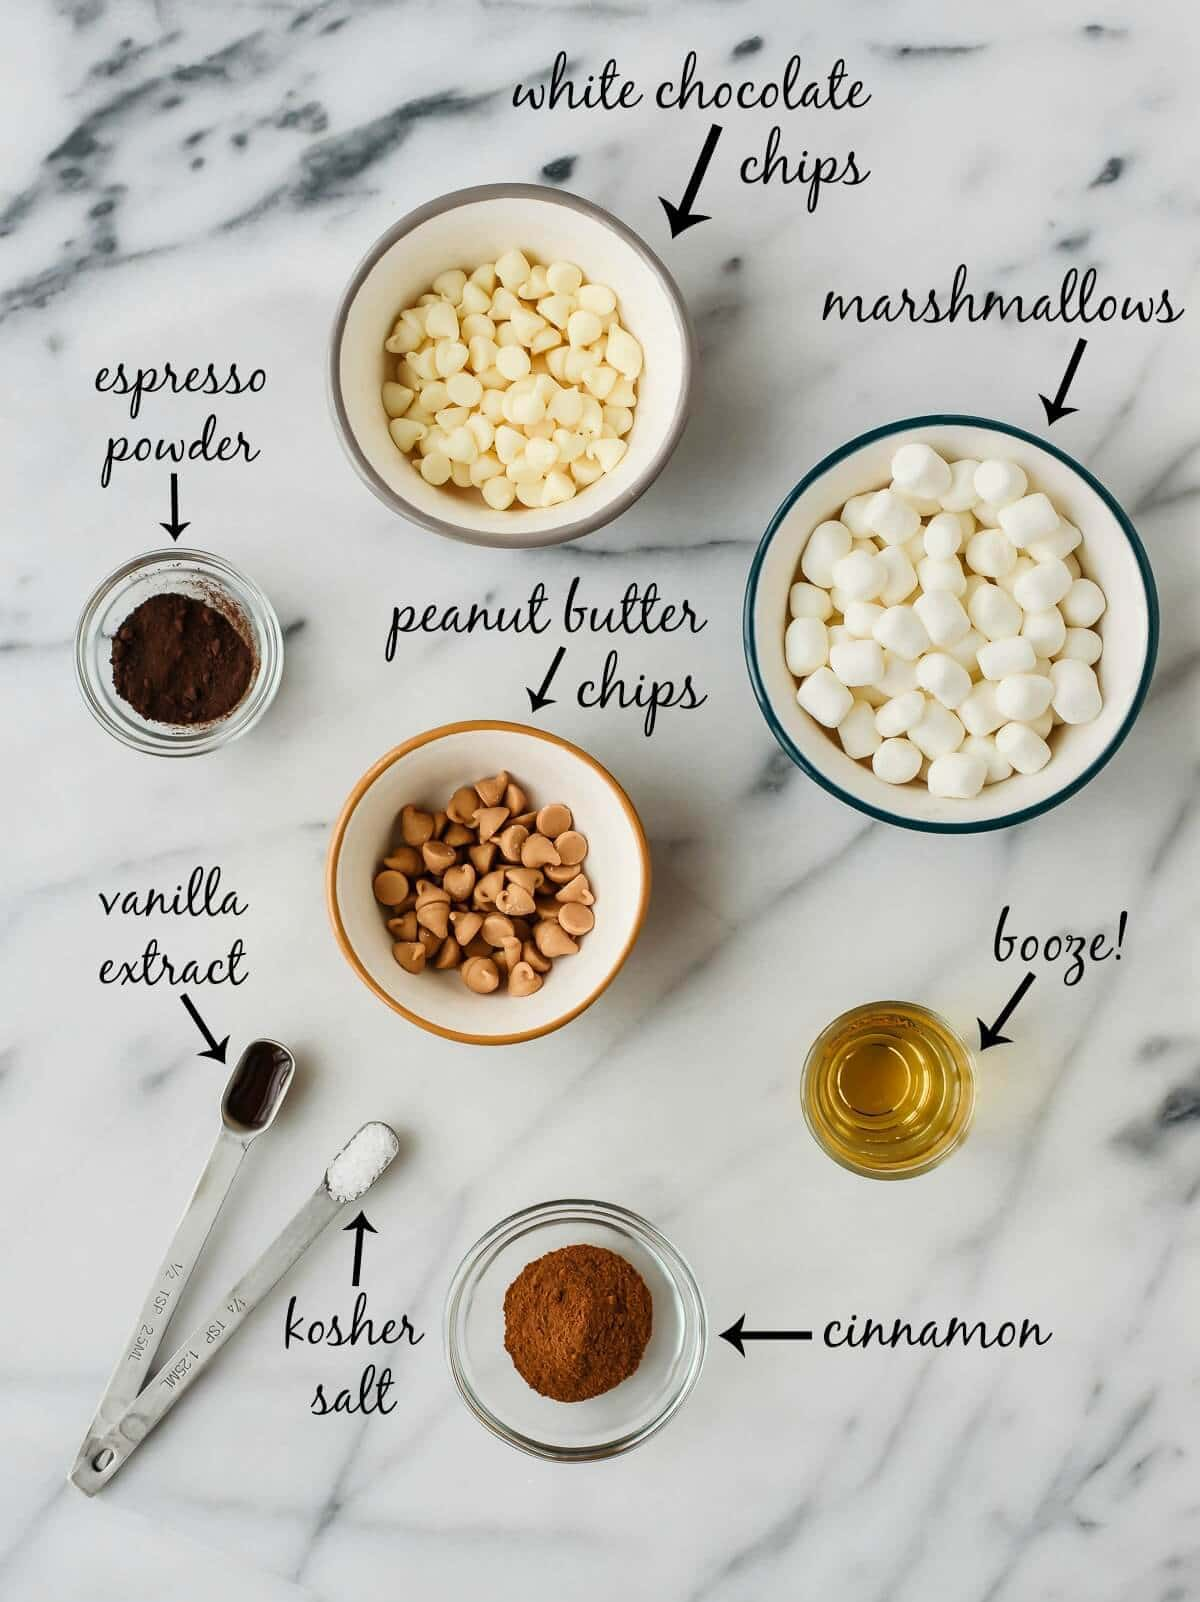 10 easy ways to spruce up your hot chocolate